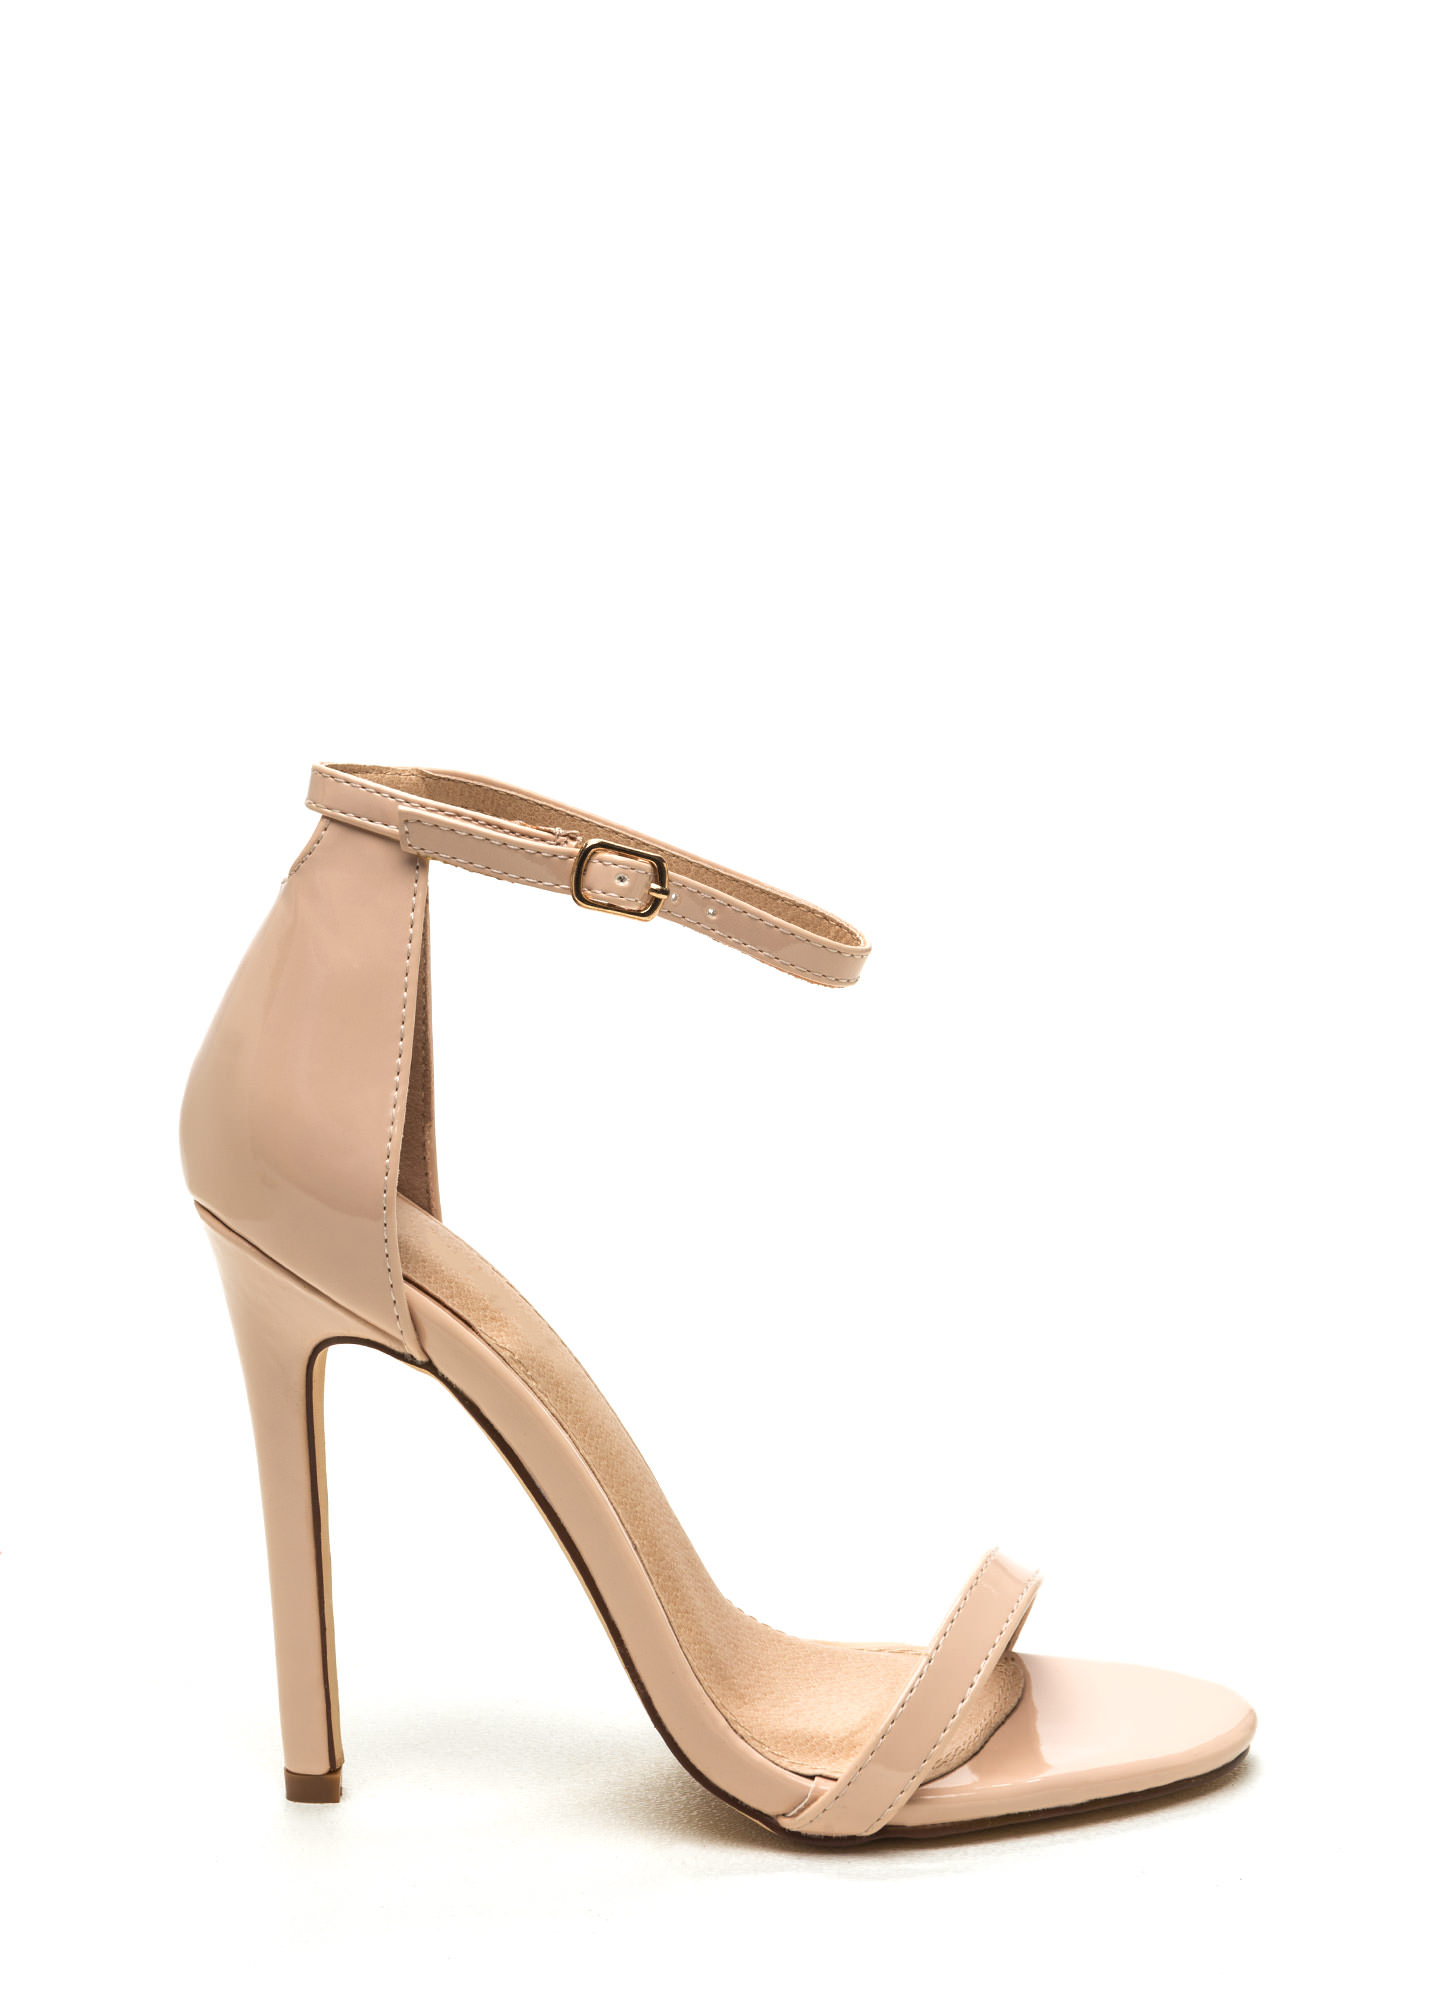 Nude Strapy Heels